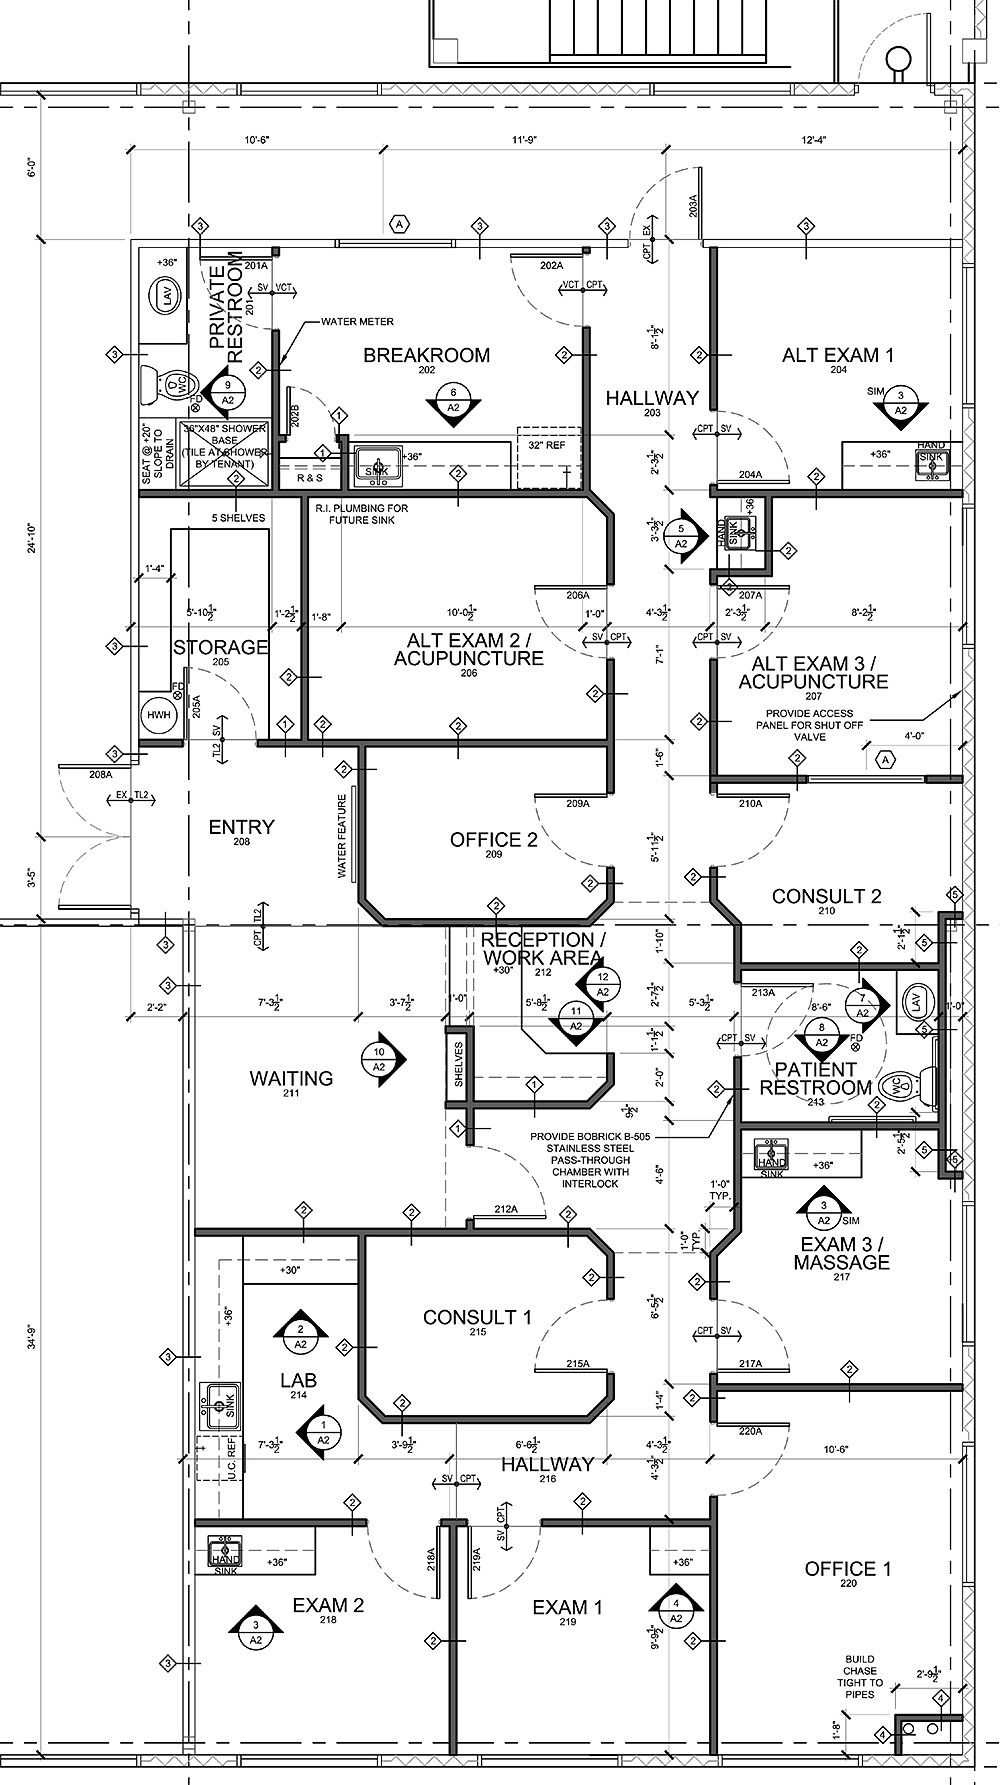 5dc99f720348cc87599be68b24a7c7b6 Office Planning Design Medical Plans Advice Floor Plan Tenant On Home Office Plans Space Planning